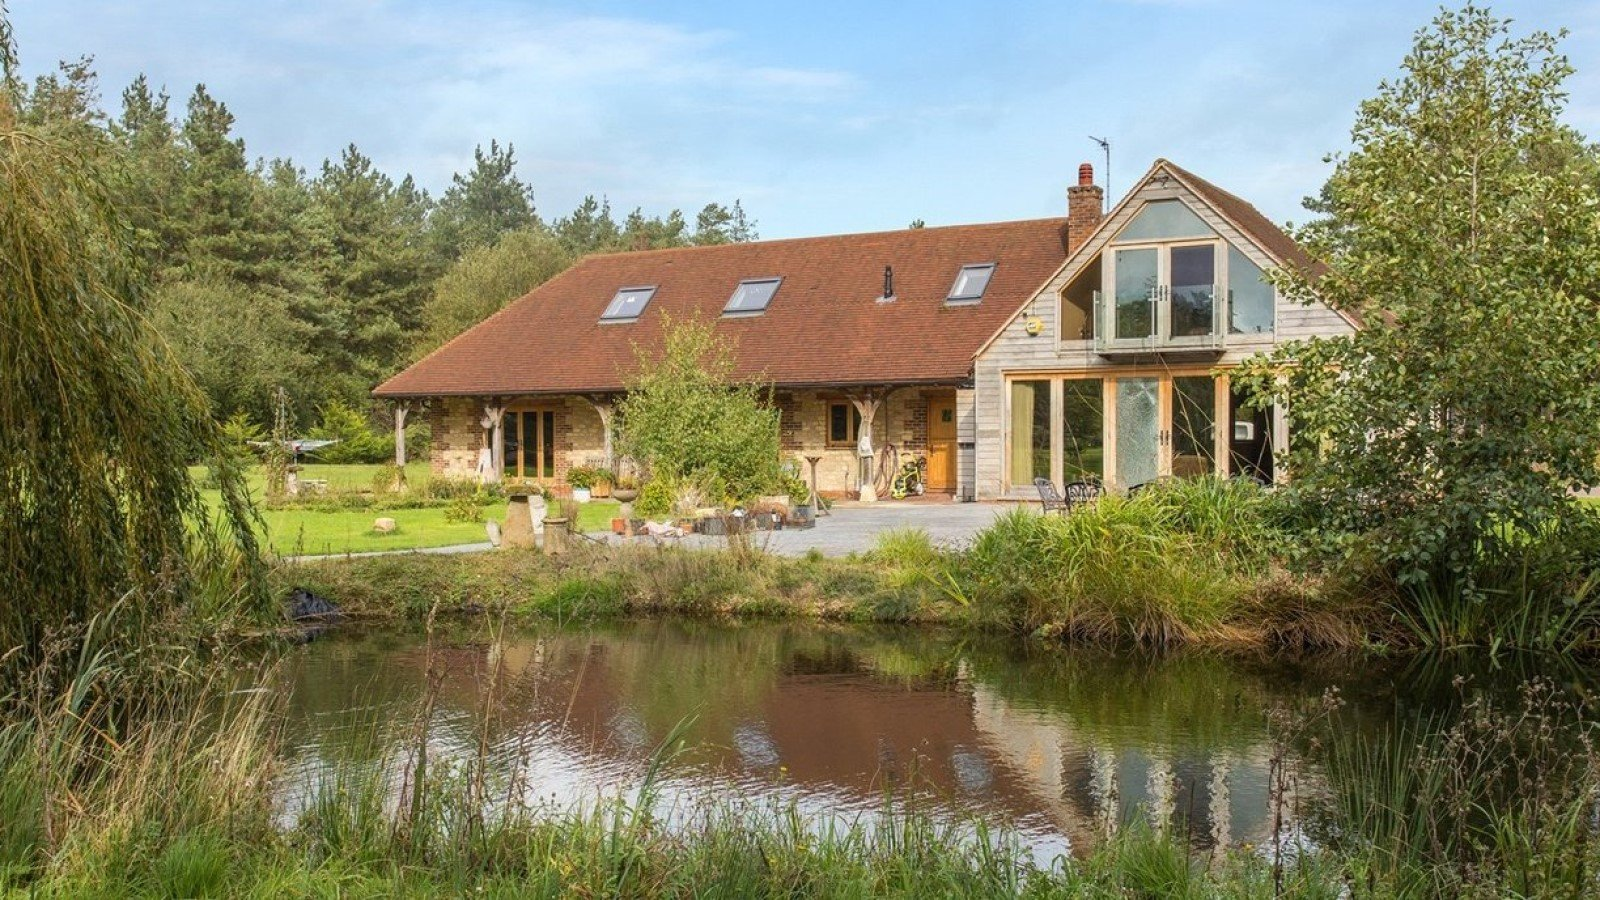 Panshill Lodge and Panshill Leisure in Murcott, Near Bicester, Oxfordshire